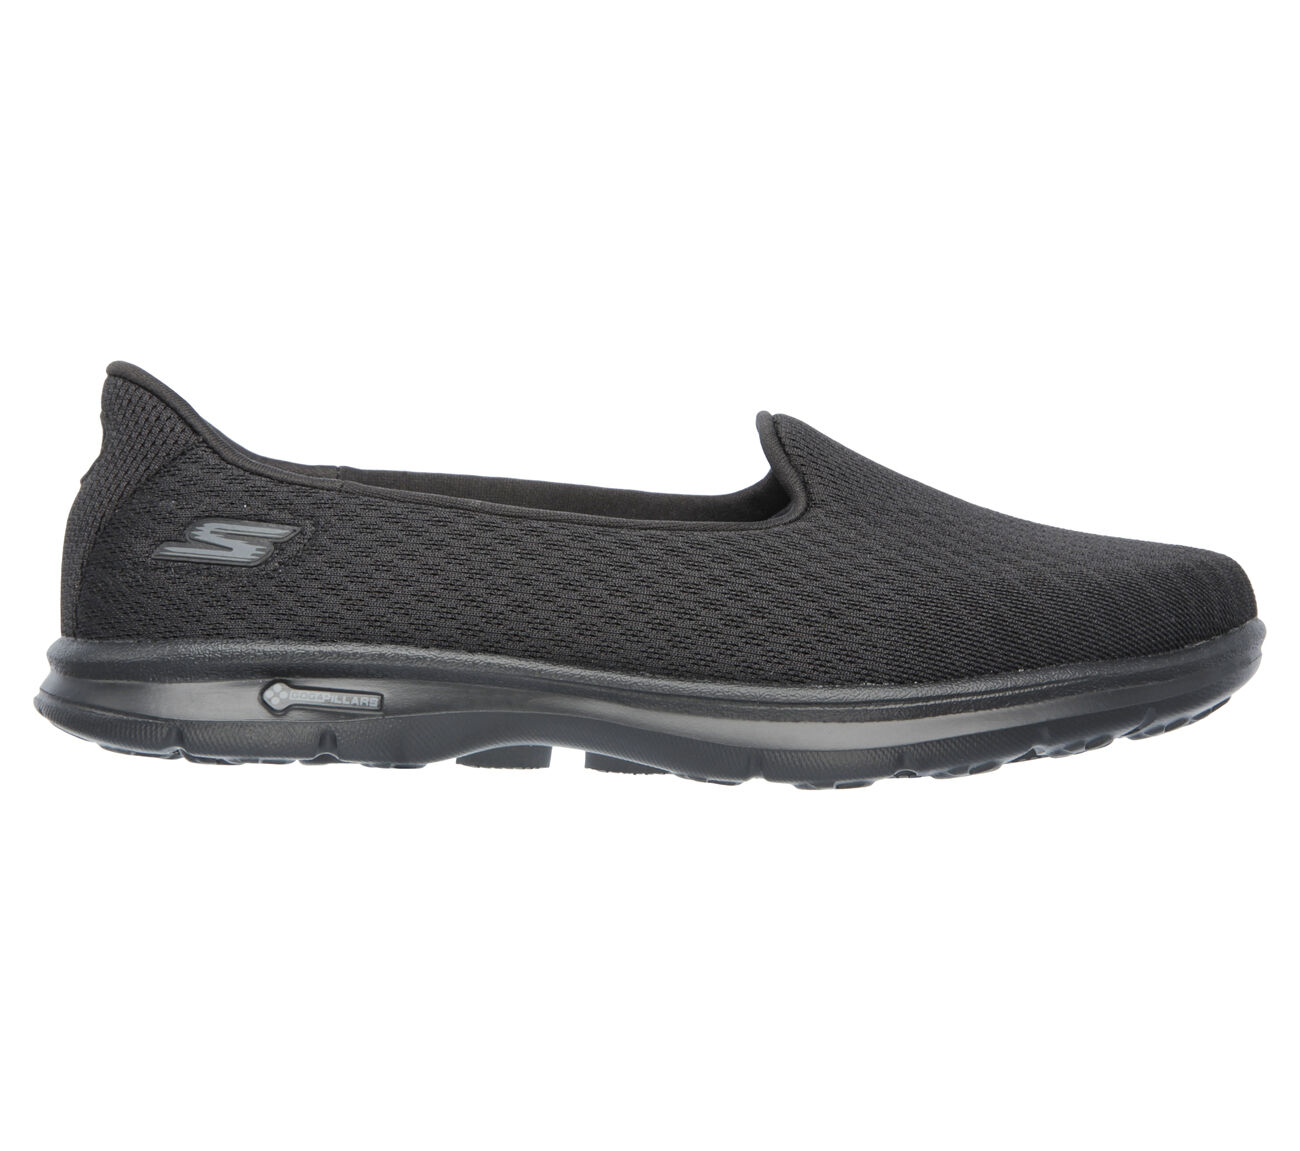 Skechers Go Step Elated Schuhes Walk Damenschuhe Memory Foam Go Walk Schuhes Goga Flats Trainers 2afc8d